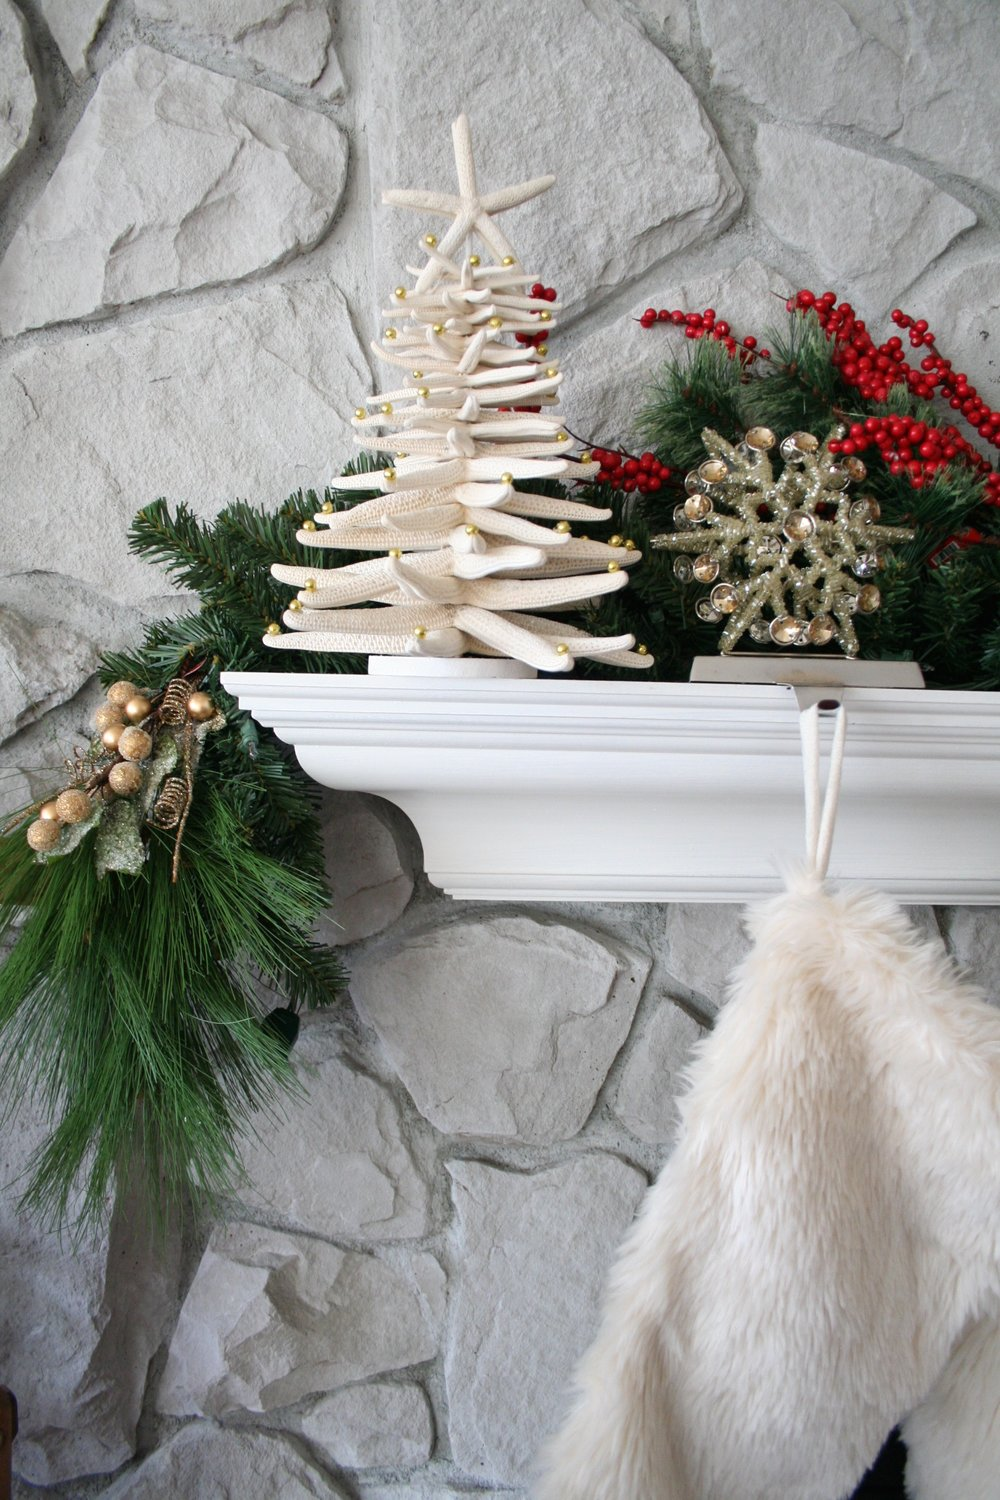 Sea Star Christmas Tree Decor